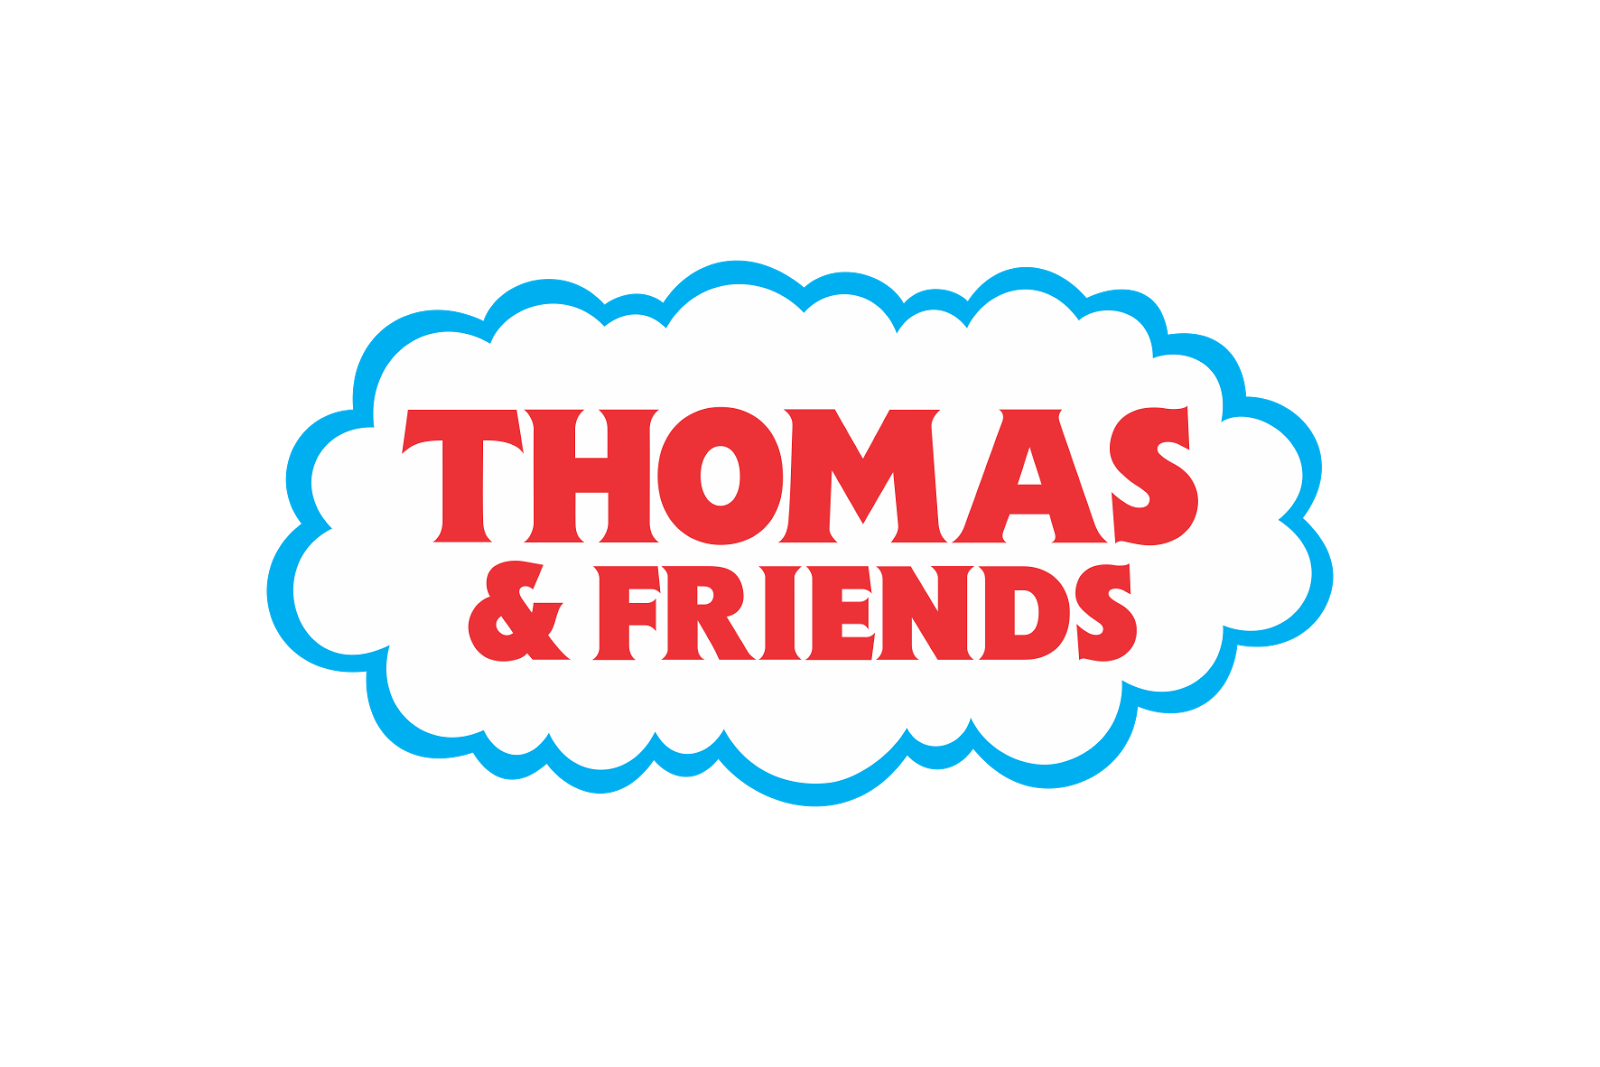 Thomas & friends logo png. Image and edward henry